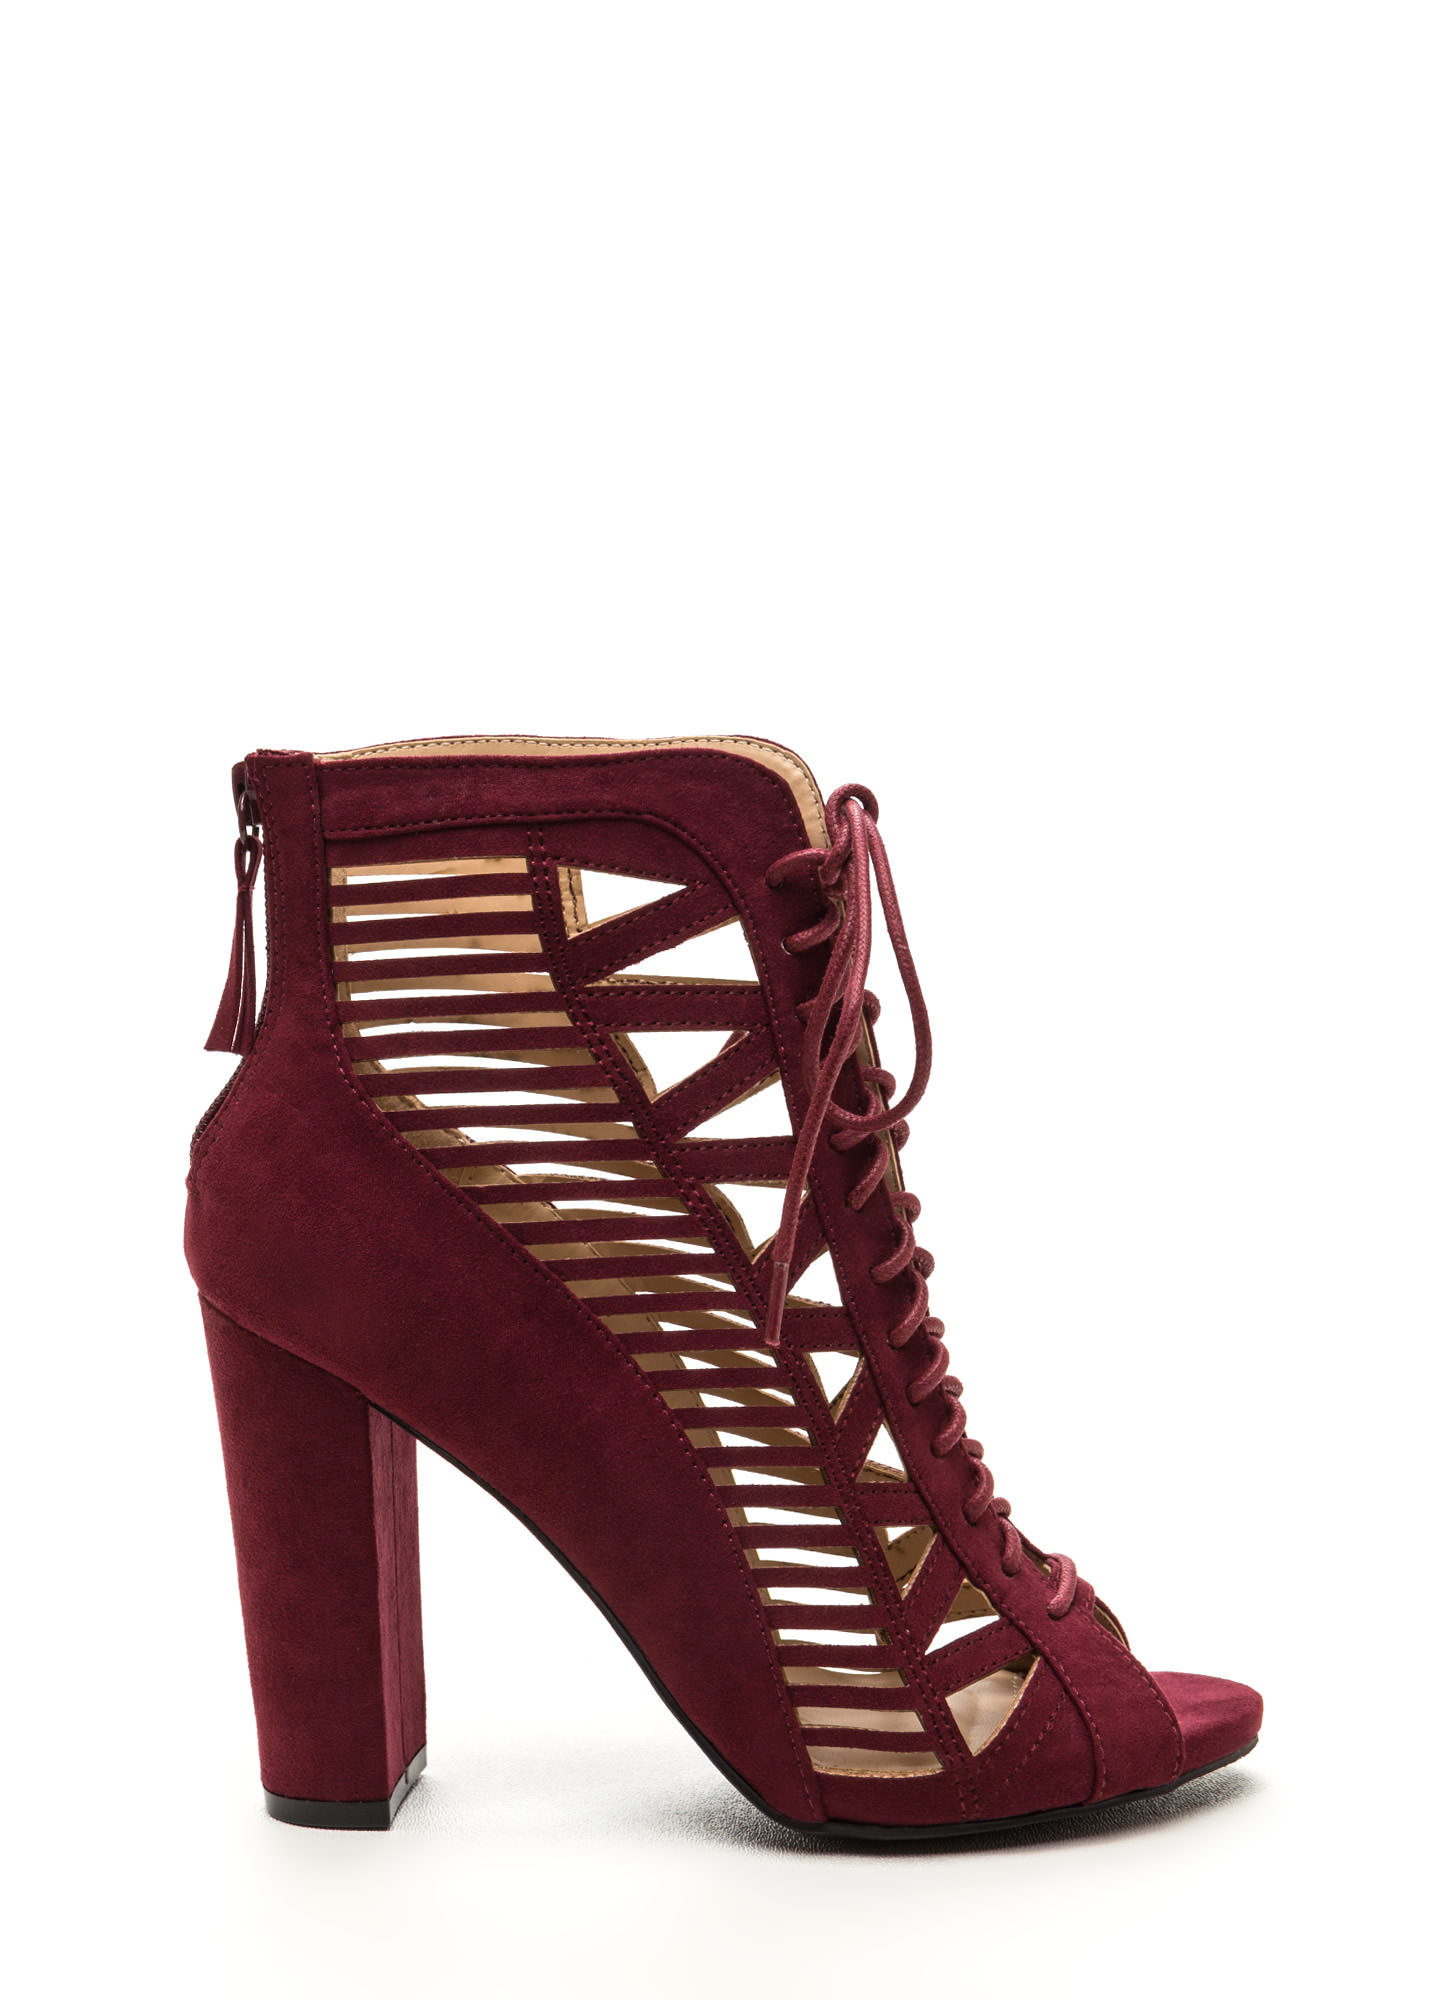 Pencil You In Lace-Up Caged Heels BURGUNDY